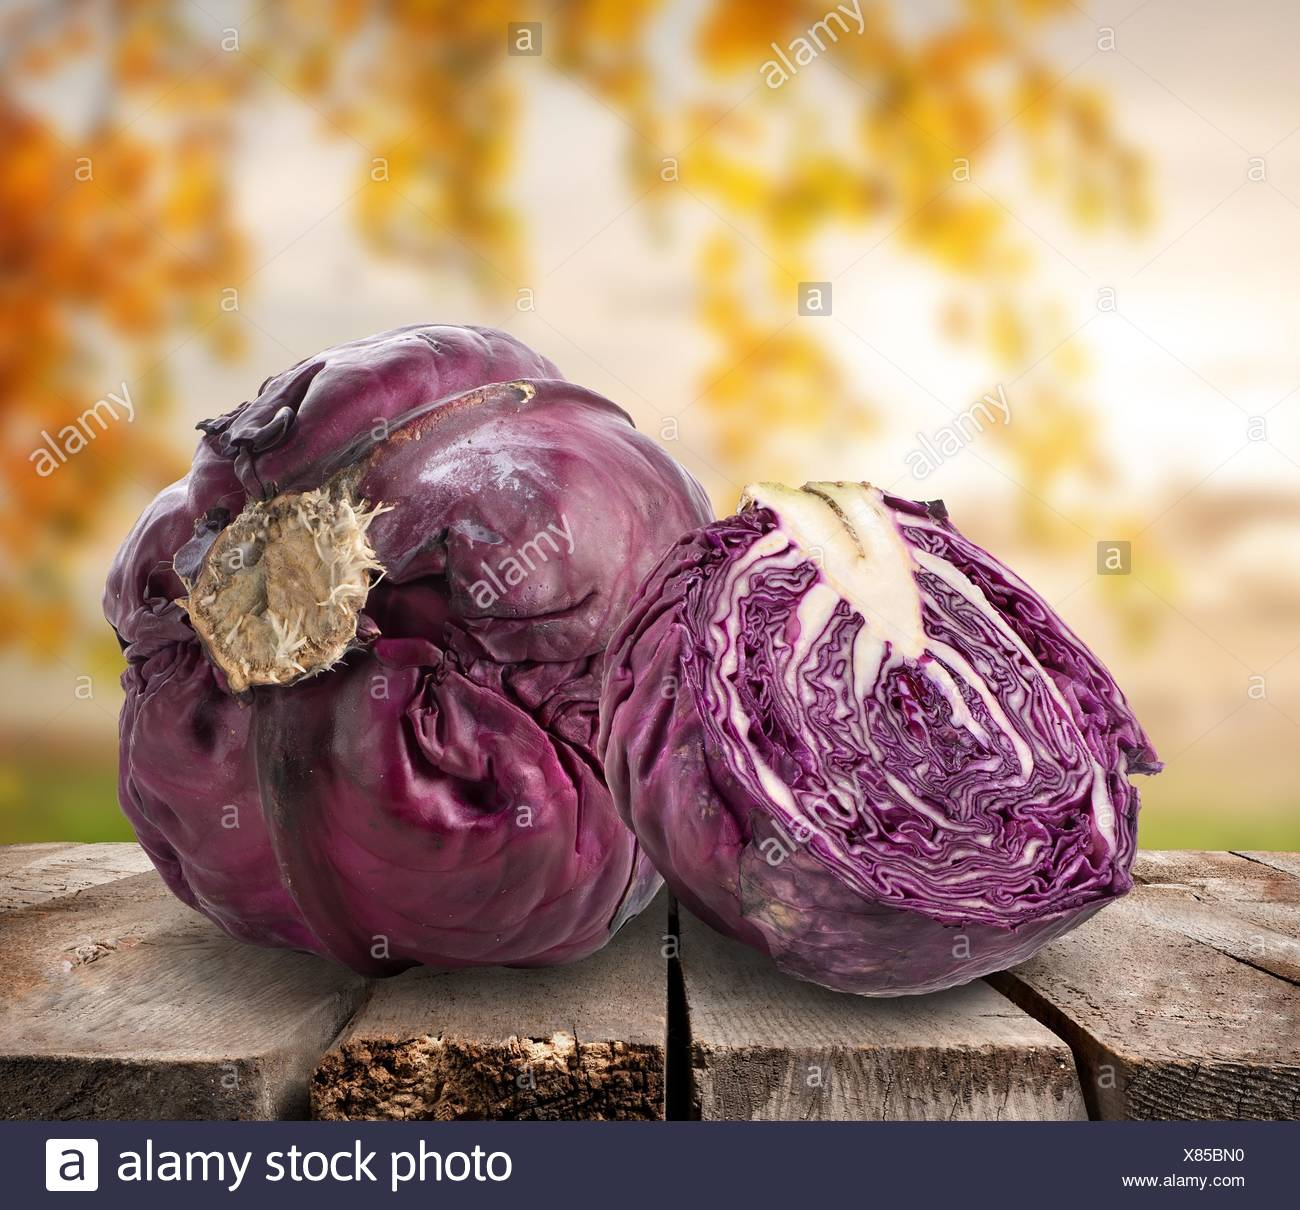 Purple cabbage on table on a nature background. - Stock Image